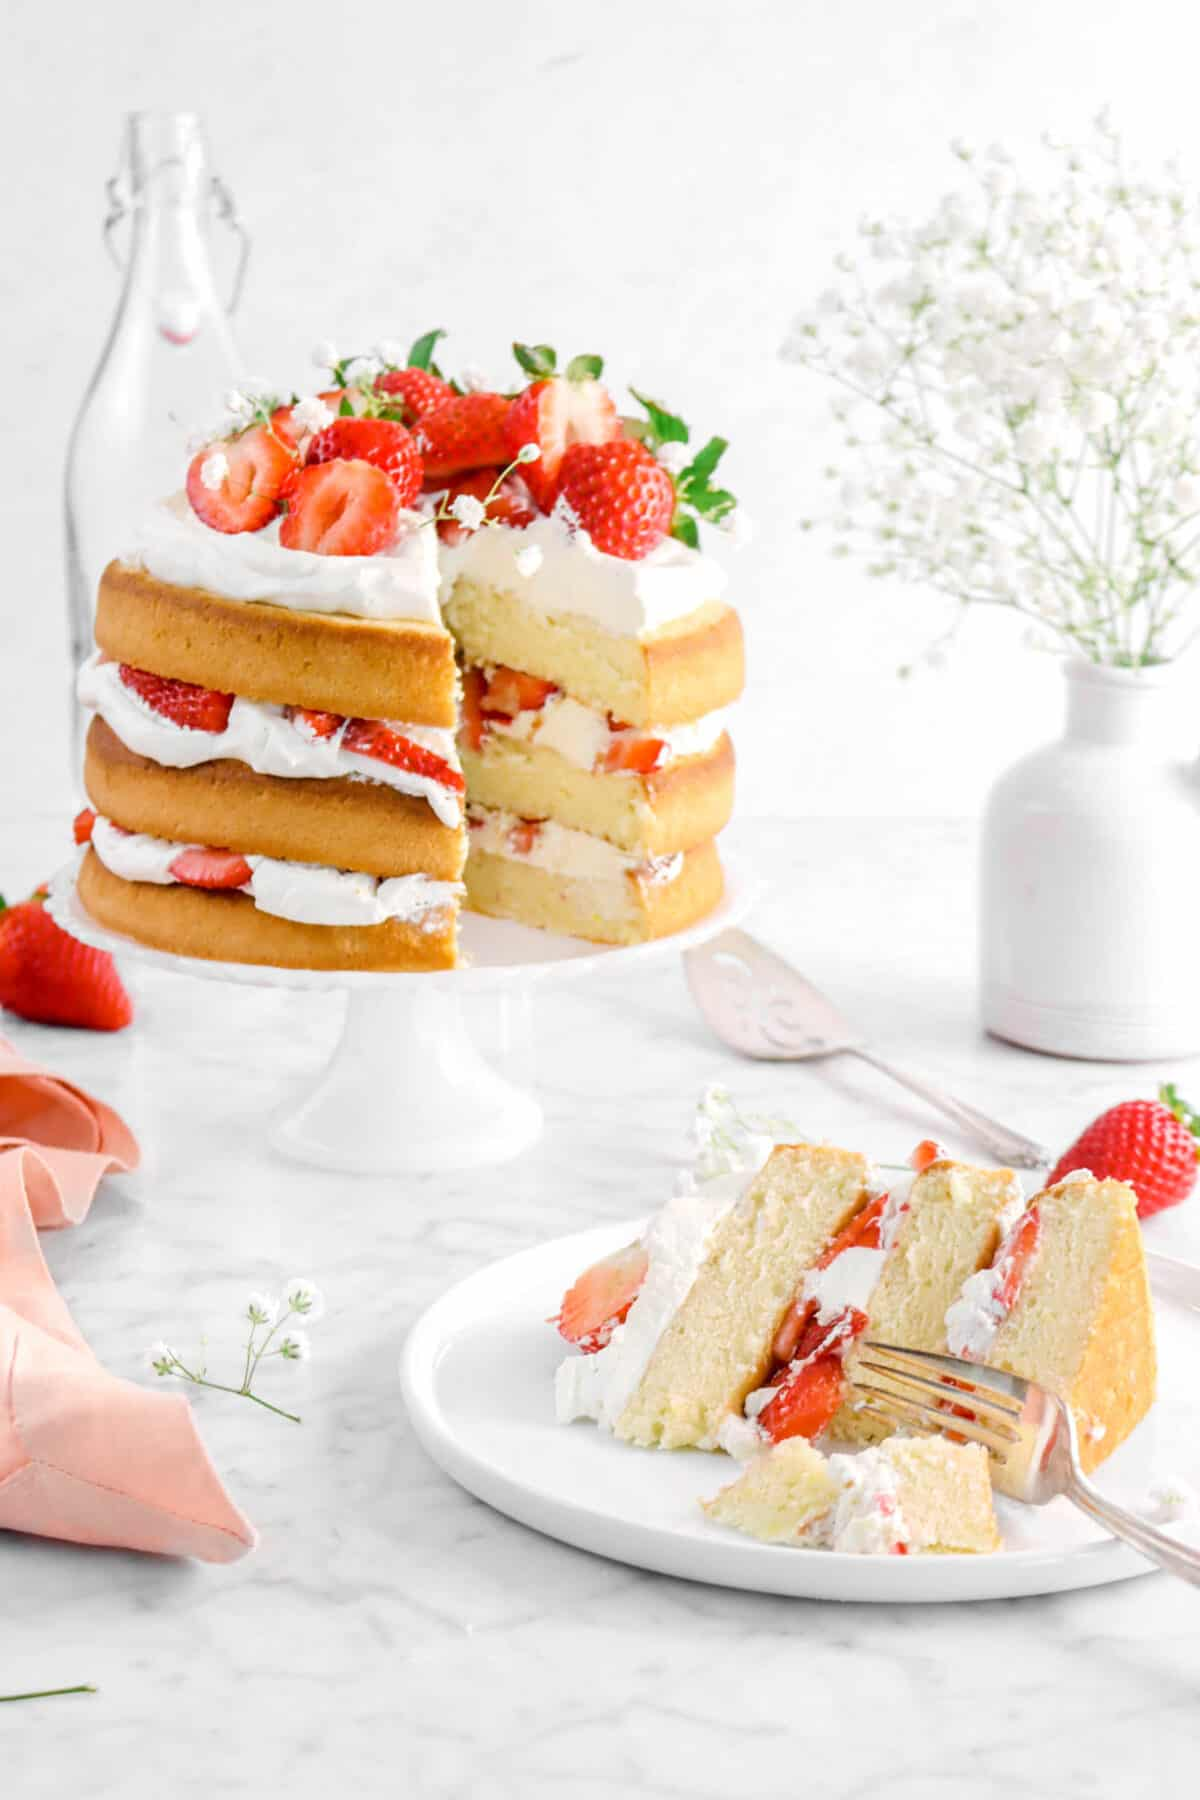 slice of strawberry shortcake layer cake being cut into with fork, full cake behind with jar of flowers